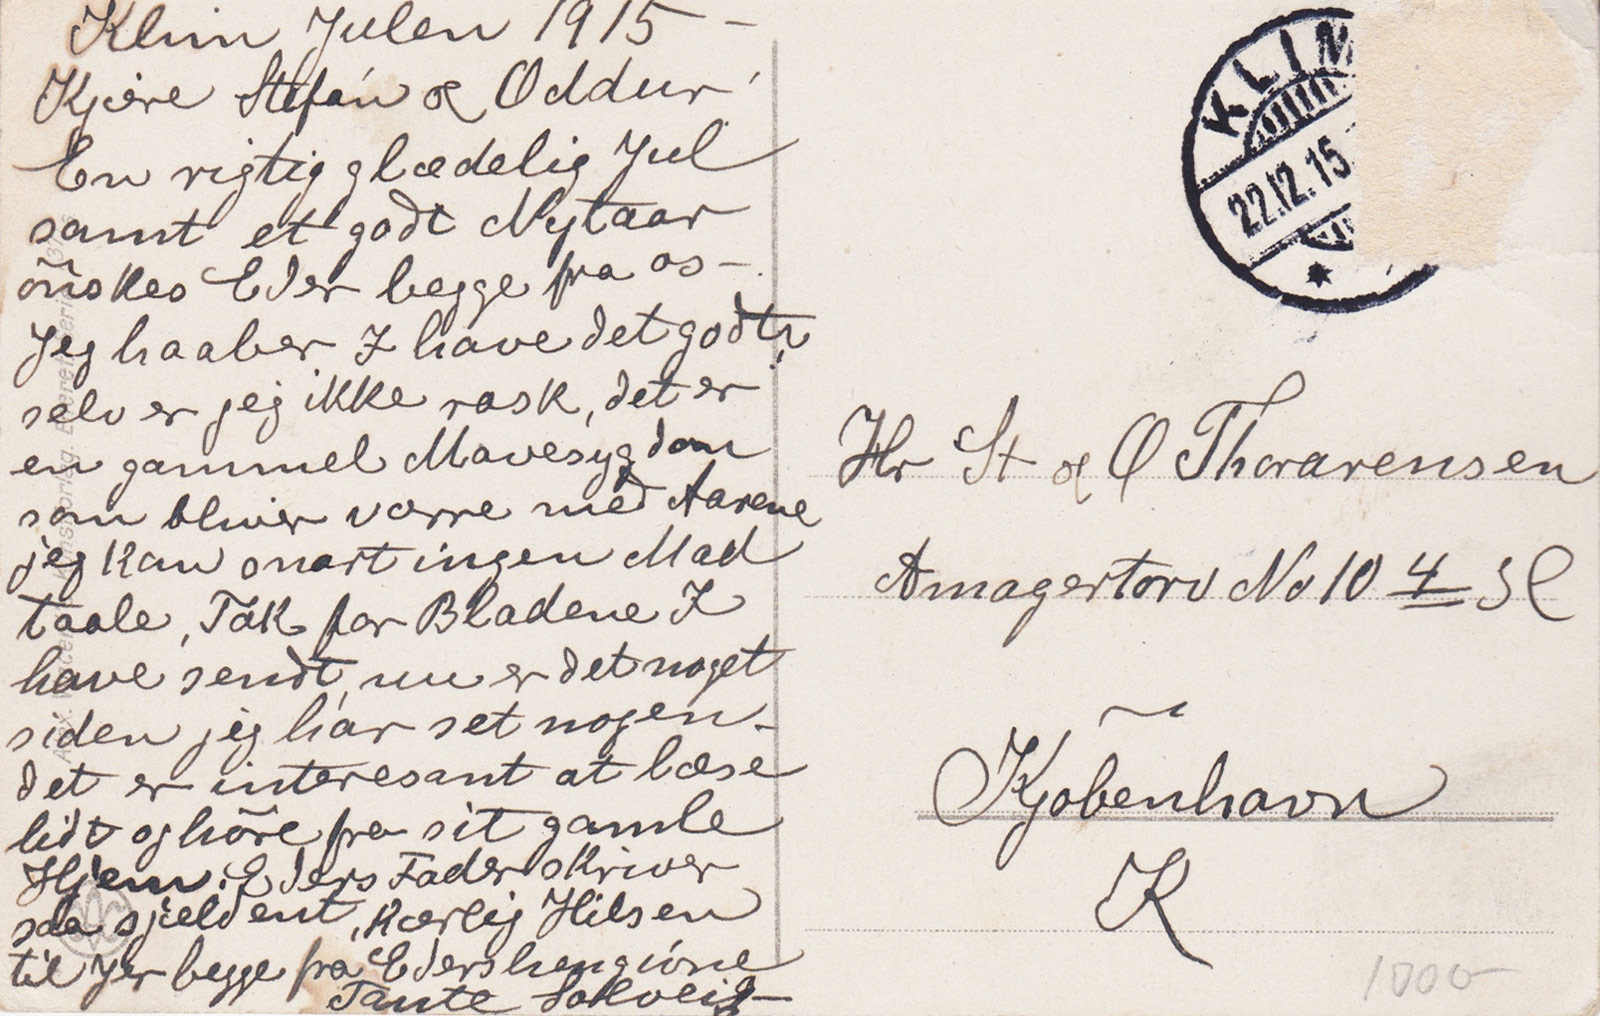 Danish writing on postcard